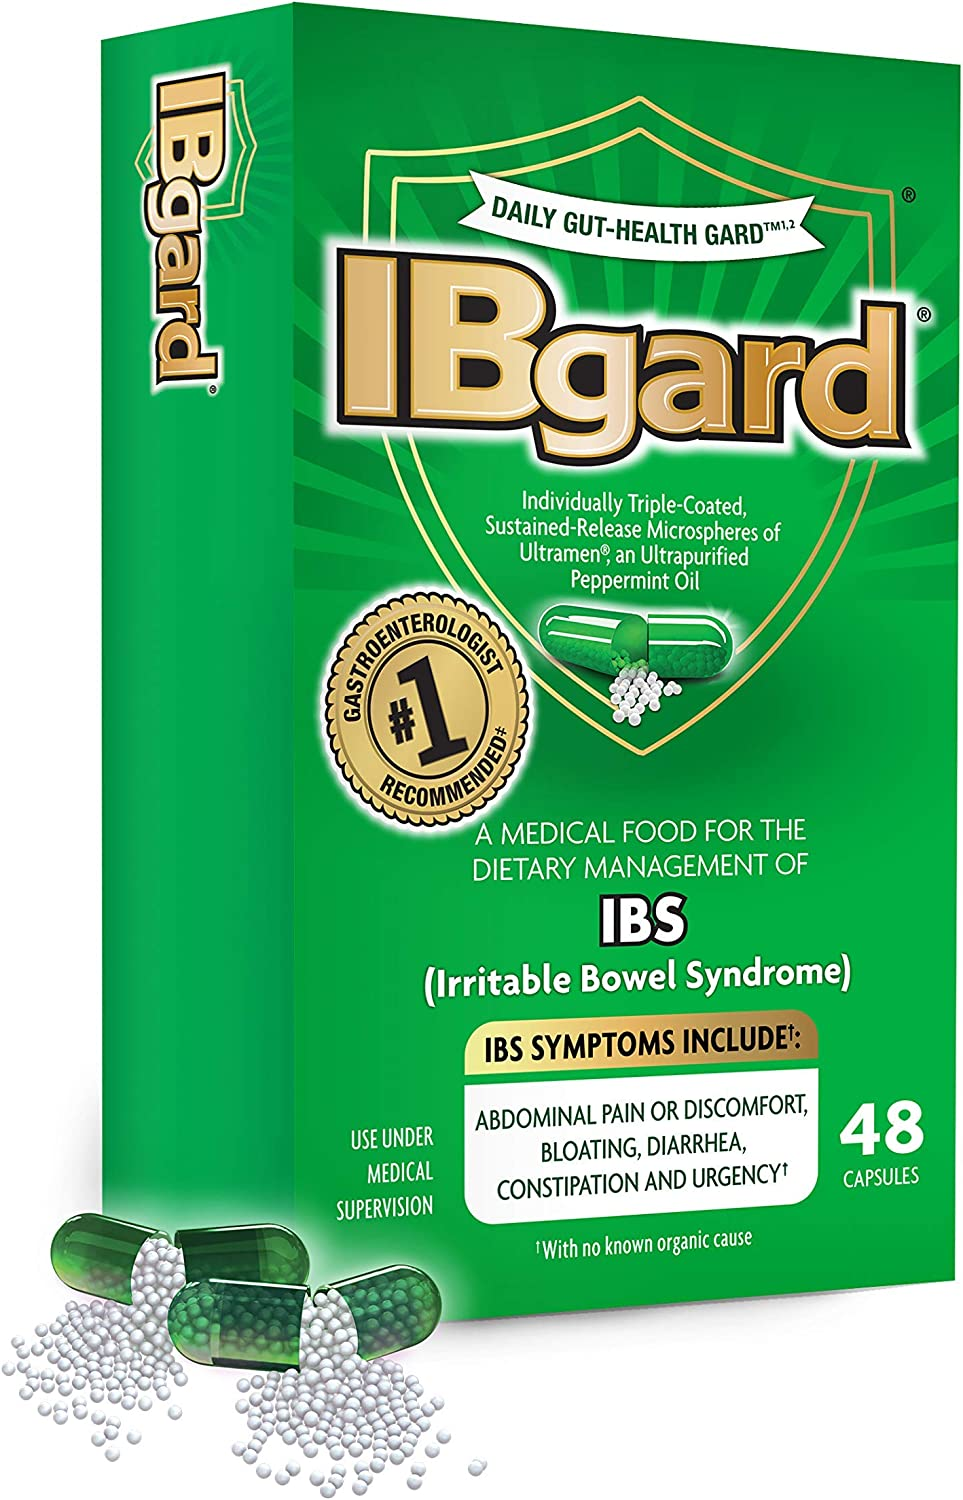 IBgard® for The Dietary Management of Irritable Bowel Syndrome (IBS) Symptoms Including, Abdominal Pain, Bloating, Diarrhea, Constipation†*, 48 Capsules: Health & Personal Care